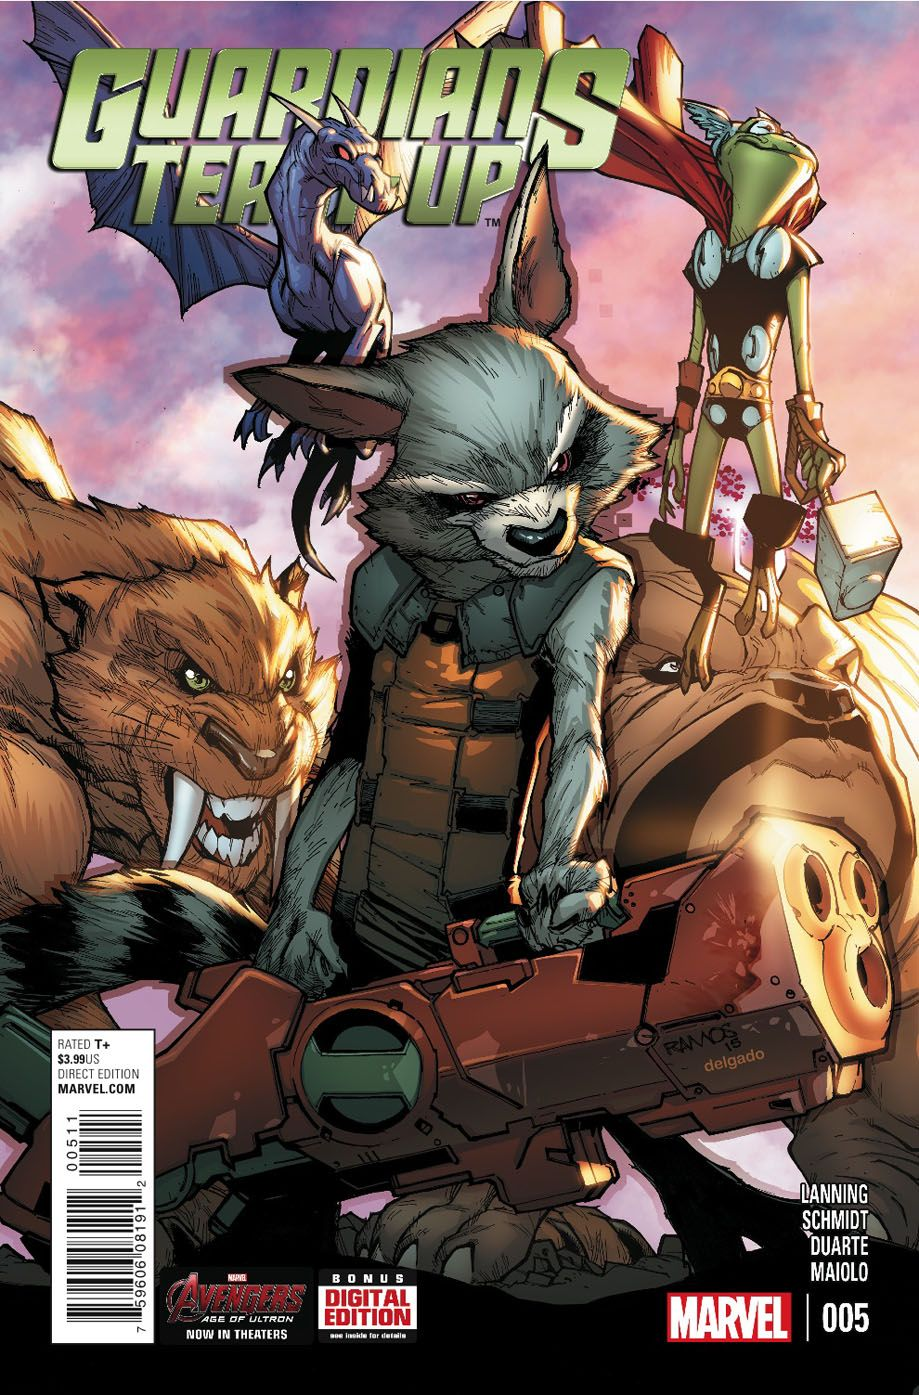 10b17bb96 Rocket Raccoon - Guardians Team-Up #5 - Cover by Humberto Ramos ...